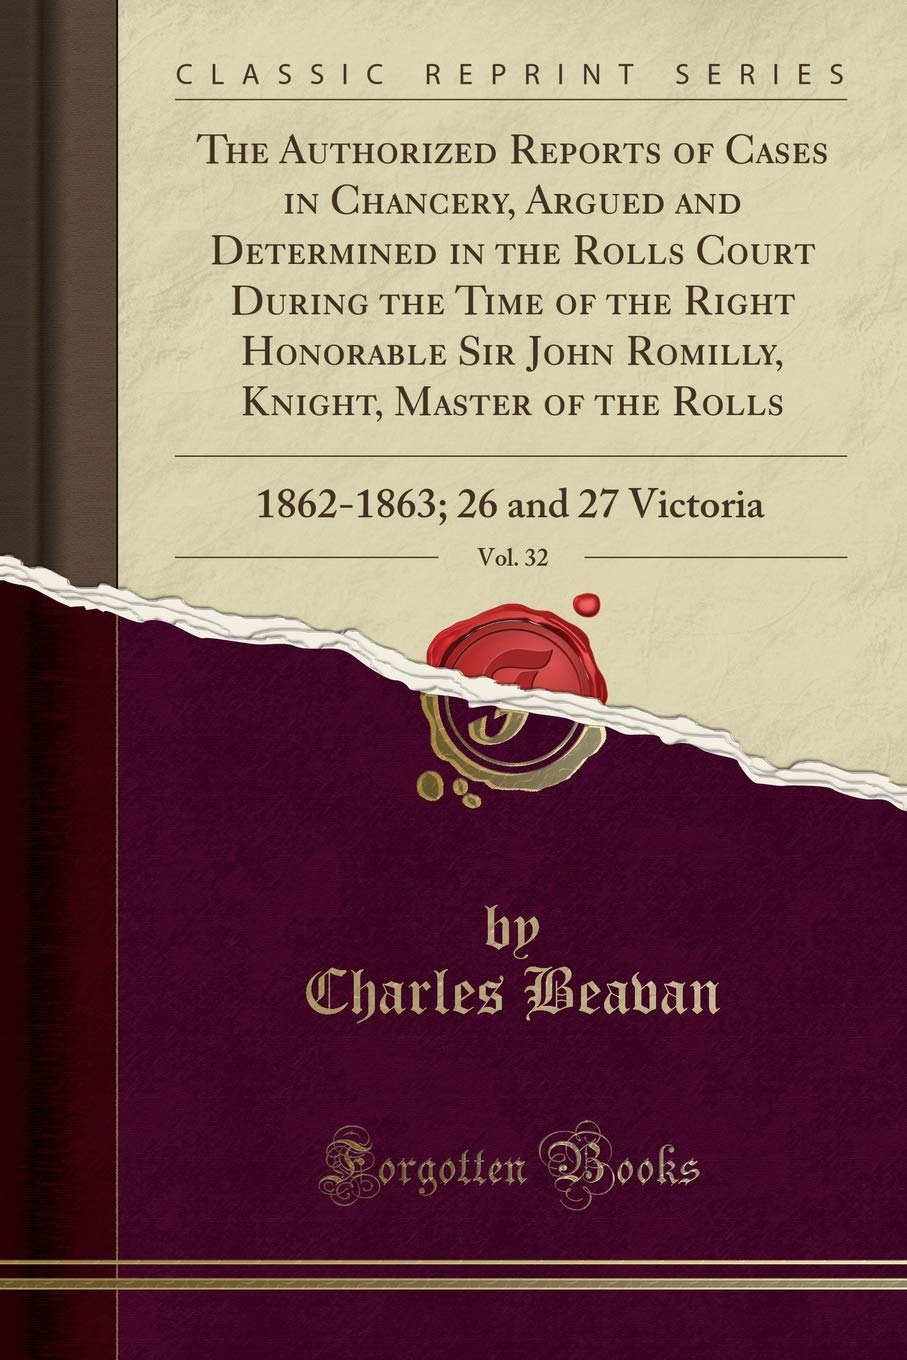 Download The Authorized Reports of Cases in Chancery, Argued and Determined in the Rolls Court During the Time of the Right Honorable Sir John Romilly, Knight, ... 26 and 27 Victoria (Classic Reprint) PDF